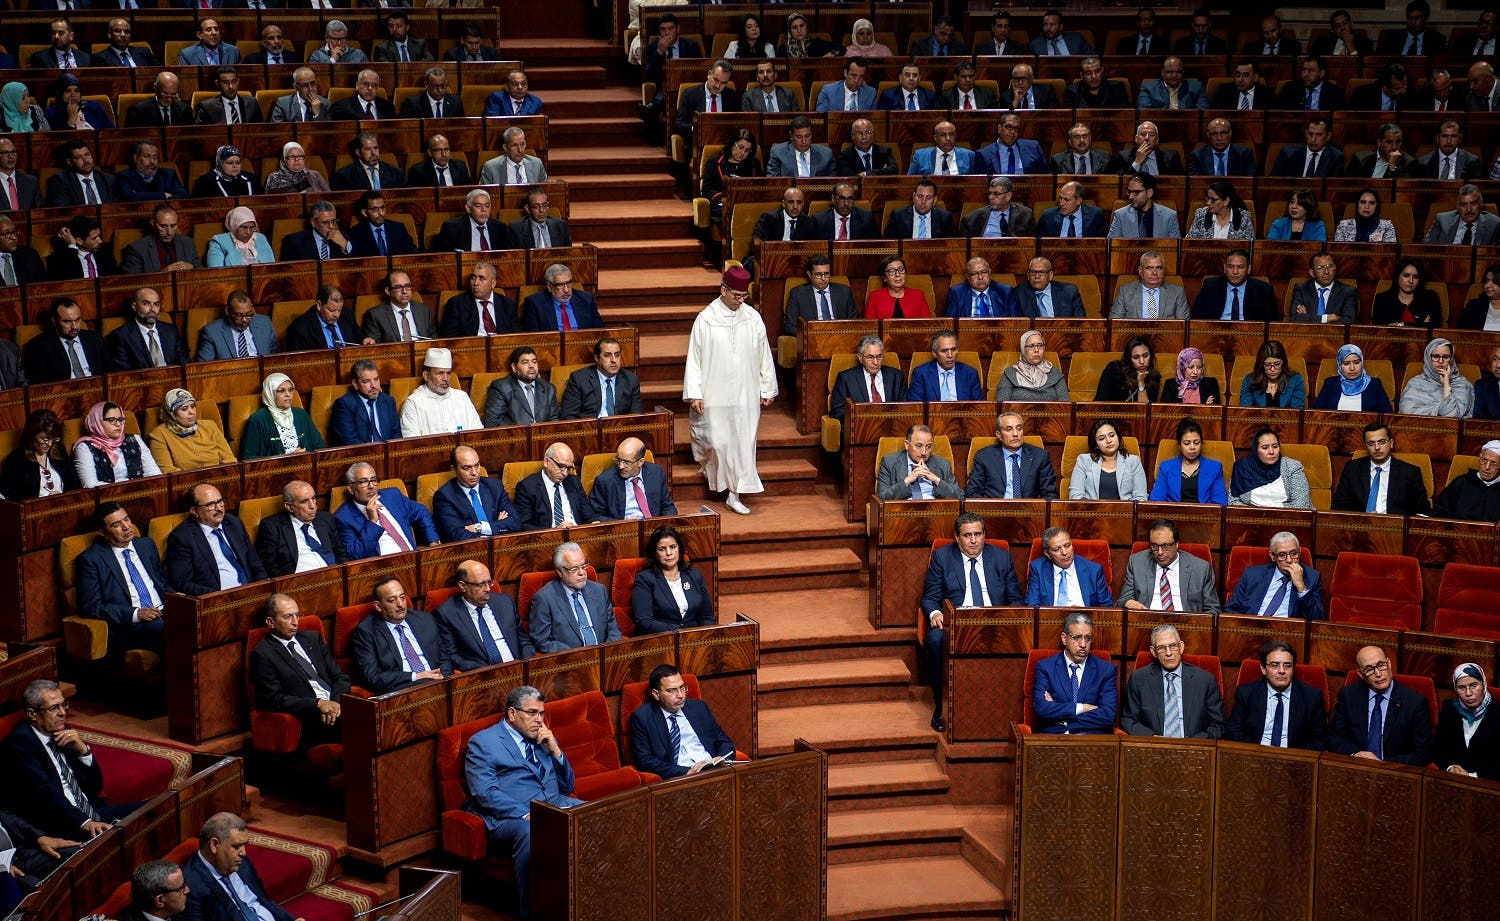 A picture taken on April 19, 2017 shows the parliament during a joint public meeting devoted to the presentation of the government program by Morocco's newly appointed Prime Minister, in Rabat, on April 19, 2017. (AFP)